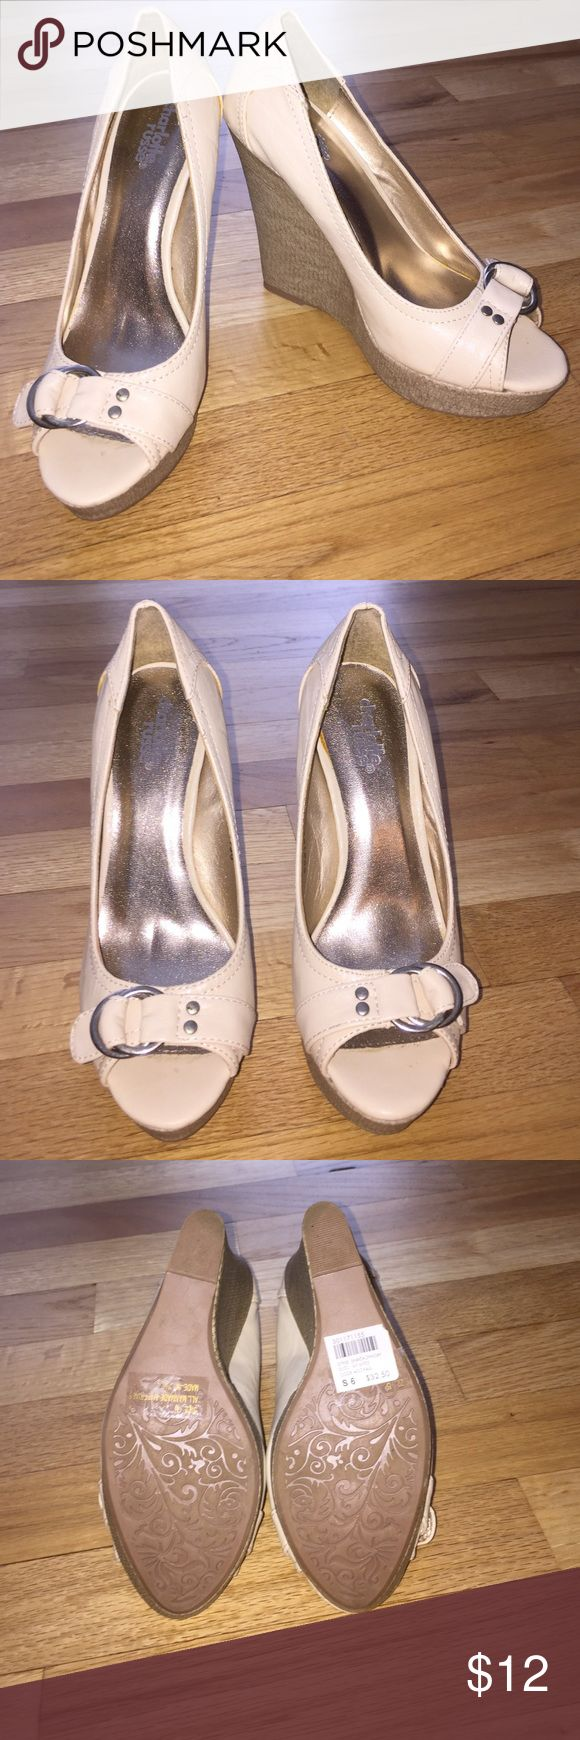 Charlotte Russe Cream Wedges Brand new, never worn!  Cream wedge with buckle accent. Charlotte Russe Shoes Wedges